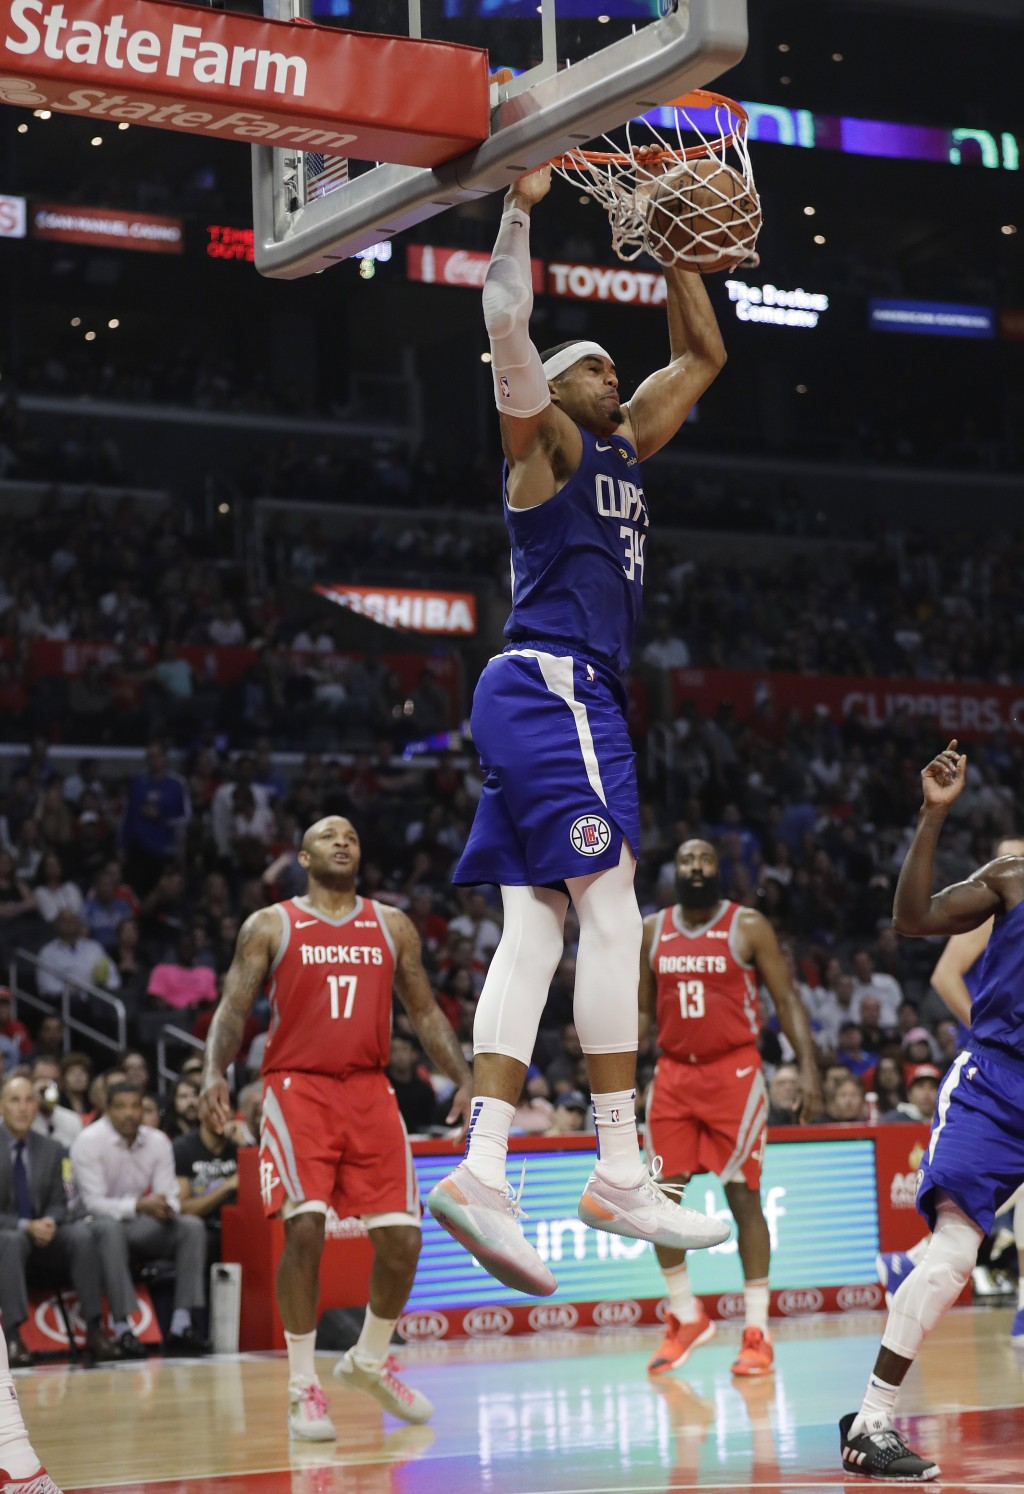 Los Angeles Clippers' Tobias Harris (34) dunks against the Houston Rockets during the first half of an NBA basketball game Sunday, Oct. 21, 2018, in L